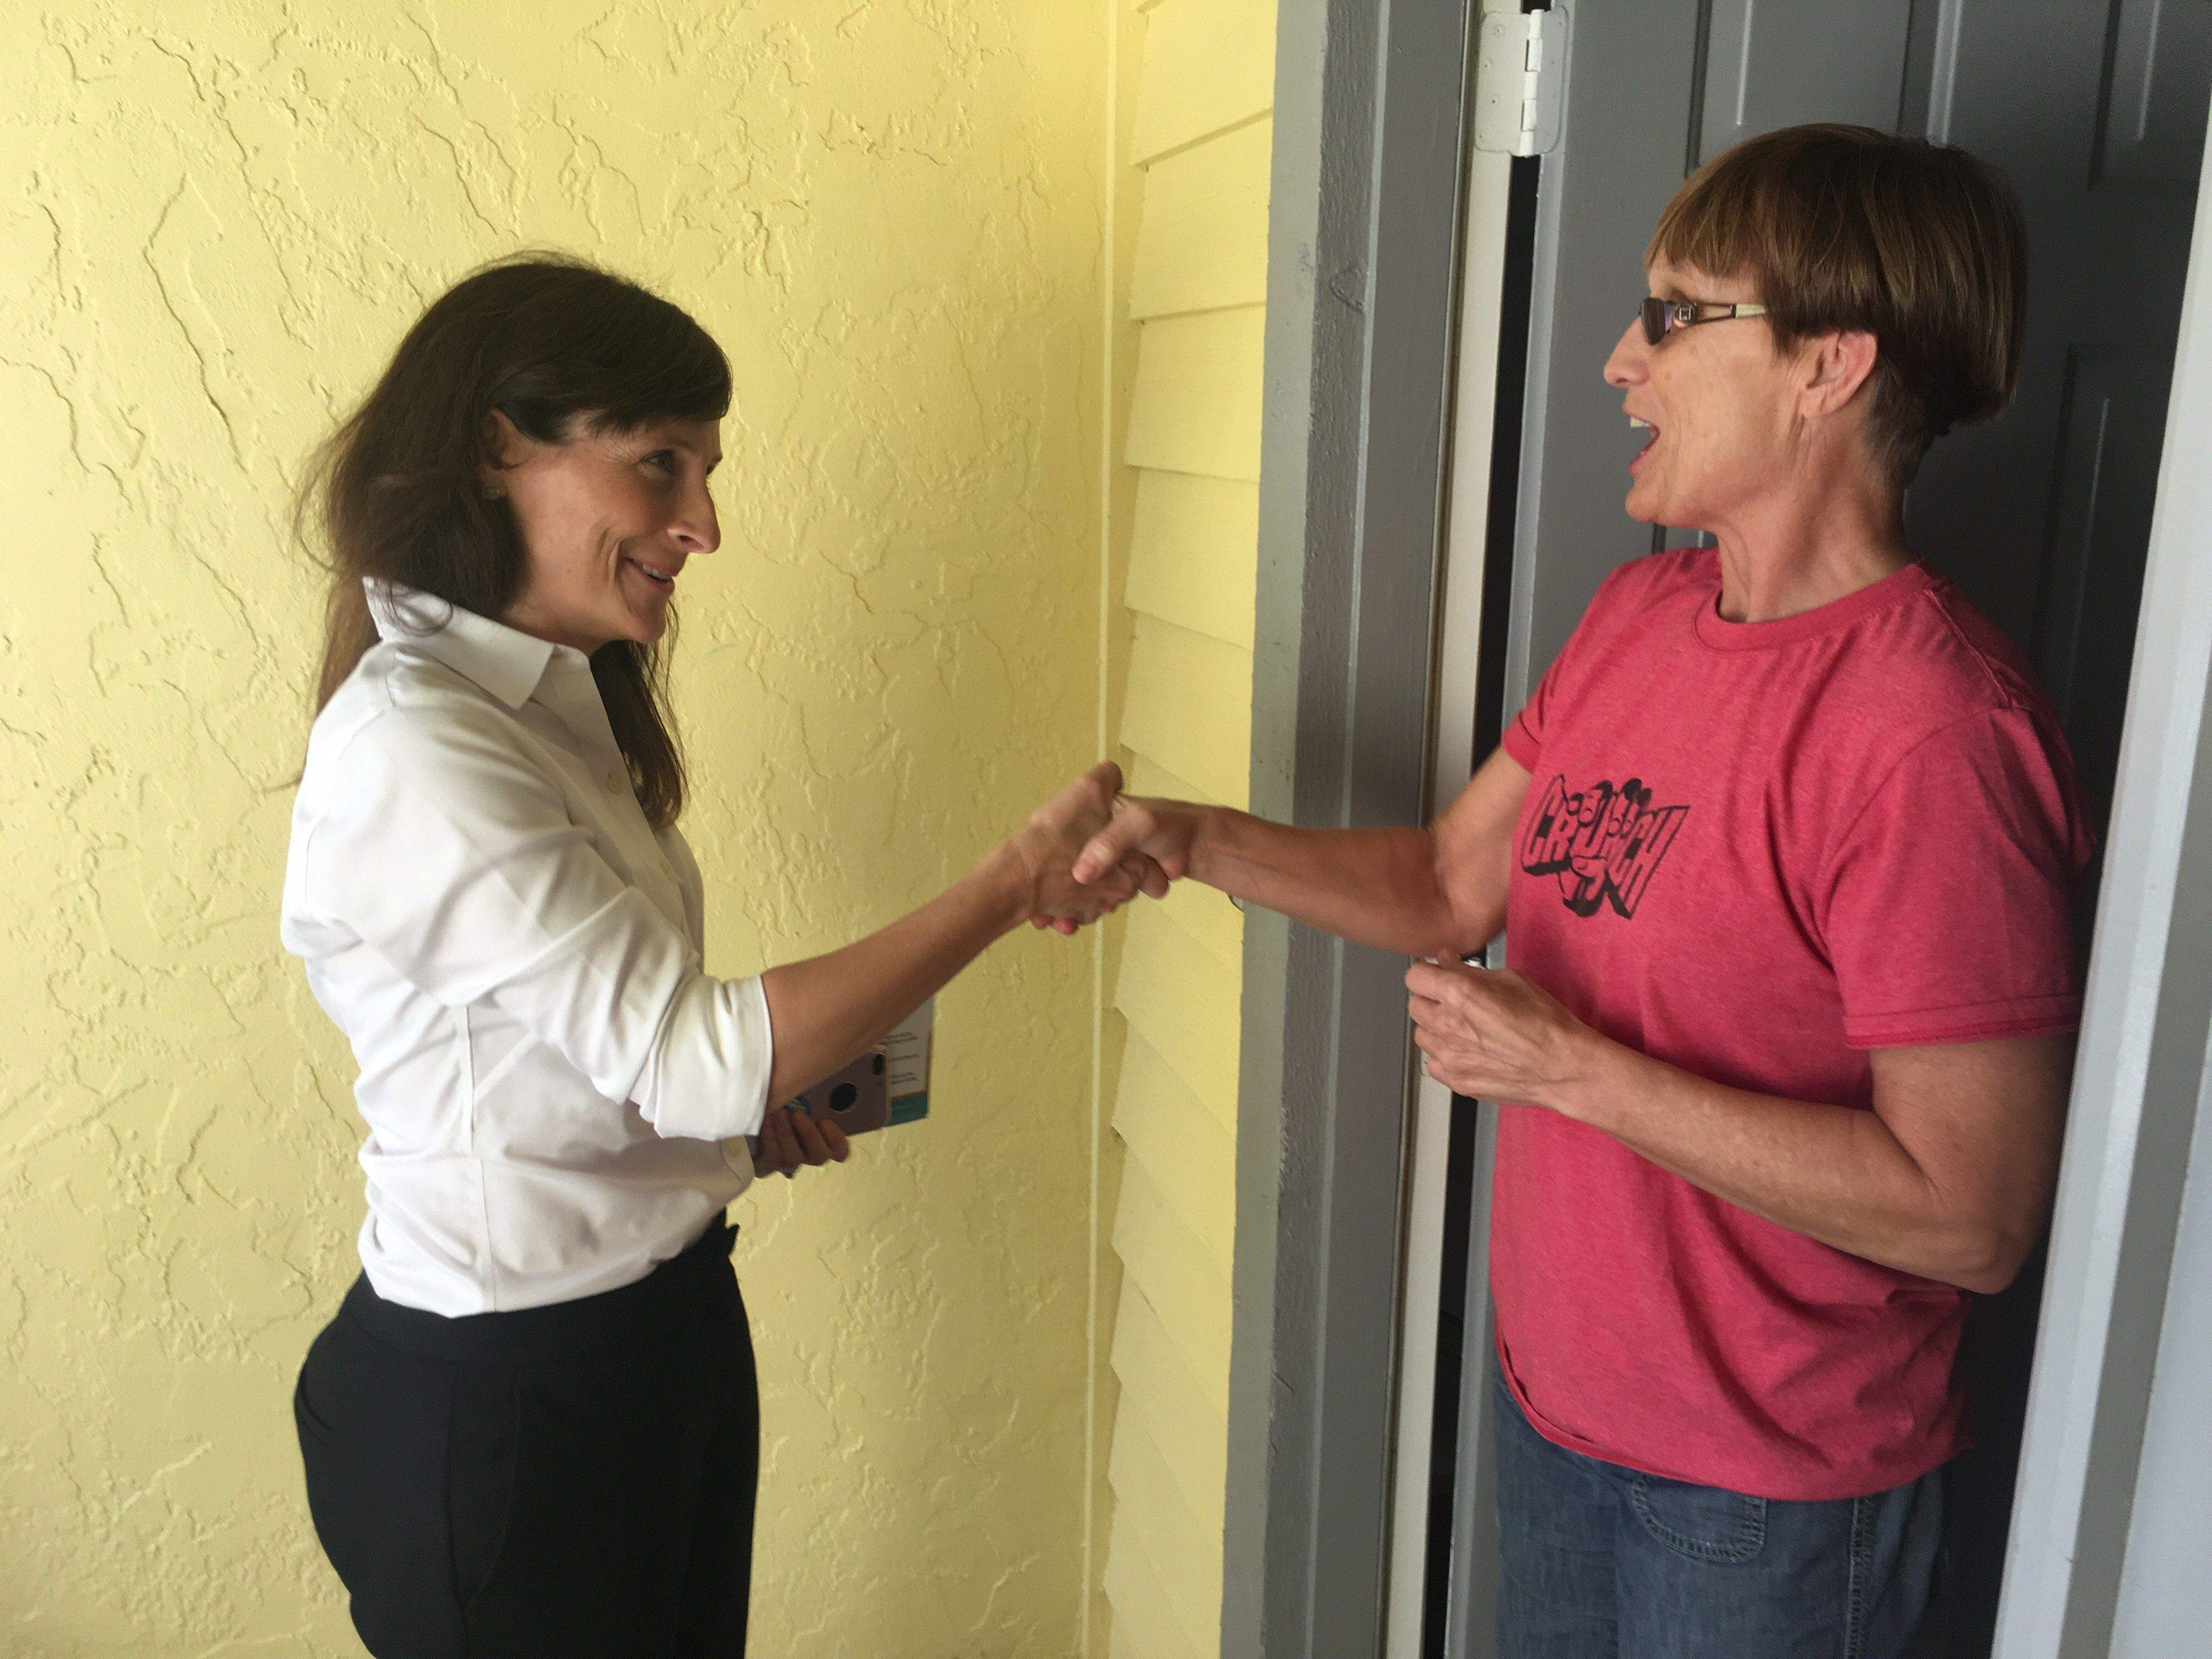 Democrat Margaret Good campaigns for votes in Sarasota, Florida, on Feb. 12, 2018.